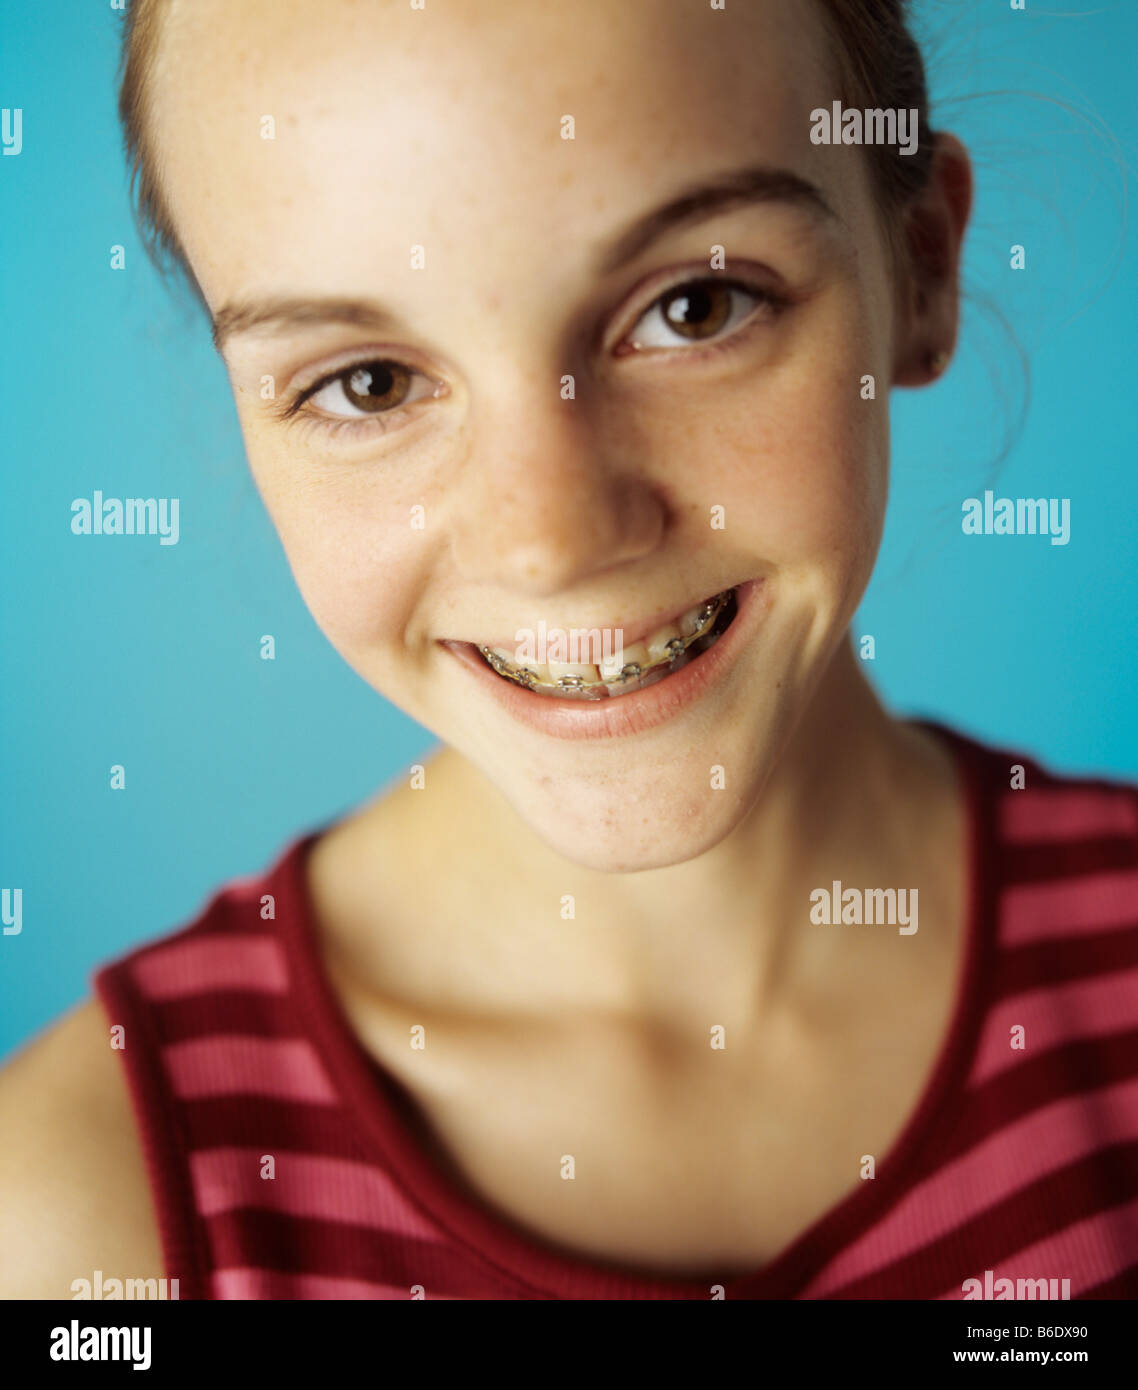 13 Year Old Boy Bedrooms: Dental Braces Fixed To The Teeth Of A 13-year-old Girl